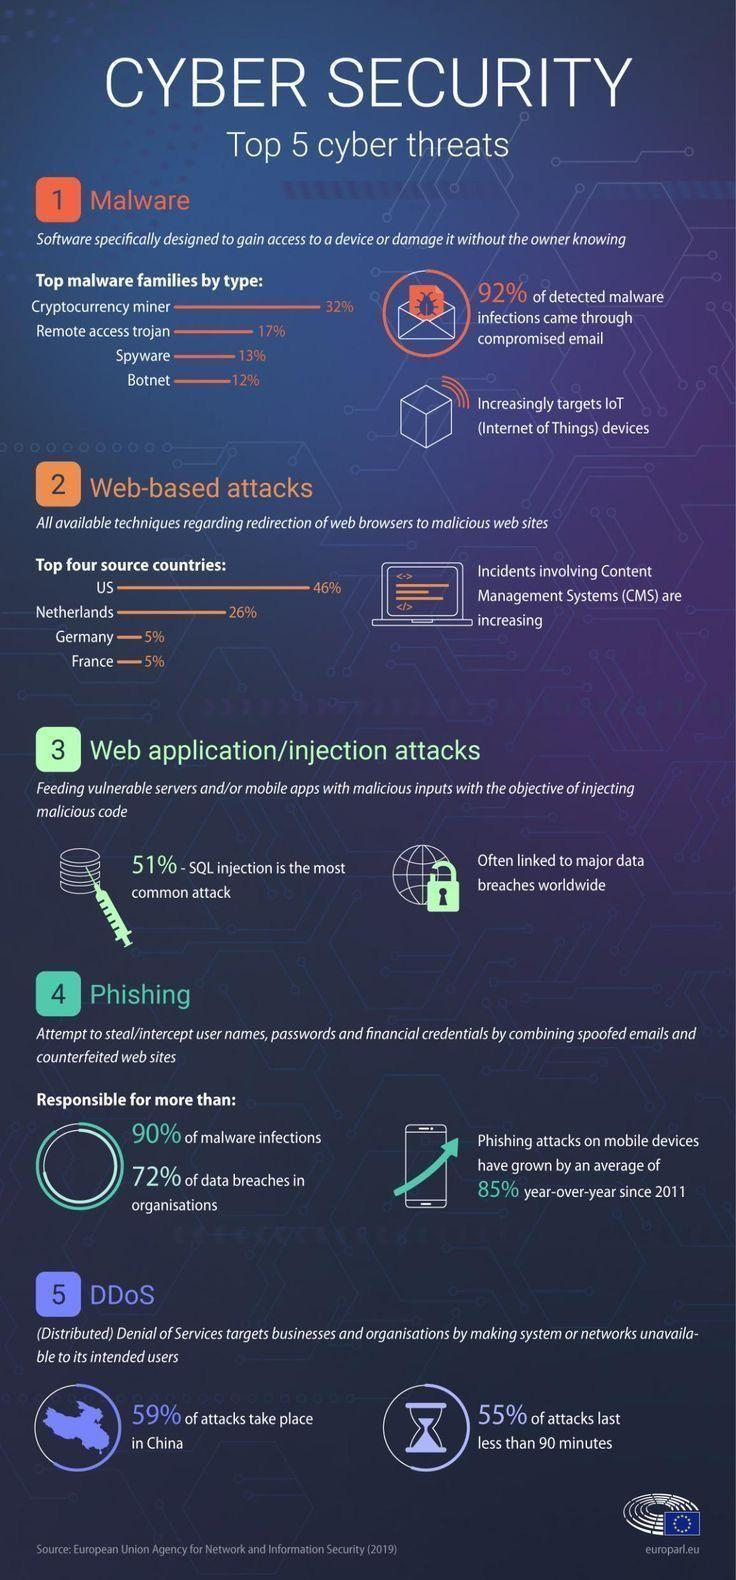 The top 5 cyber threats according to European Union Agency for Network and Information Security 2